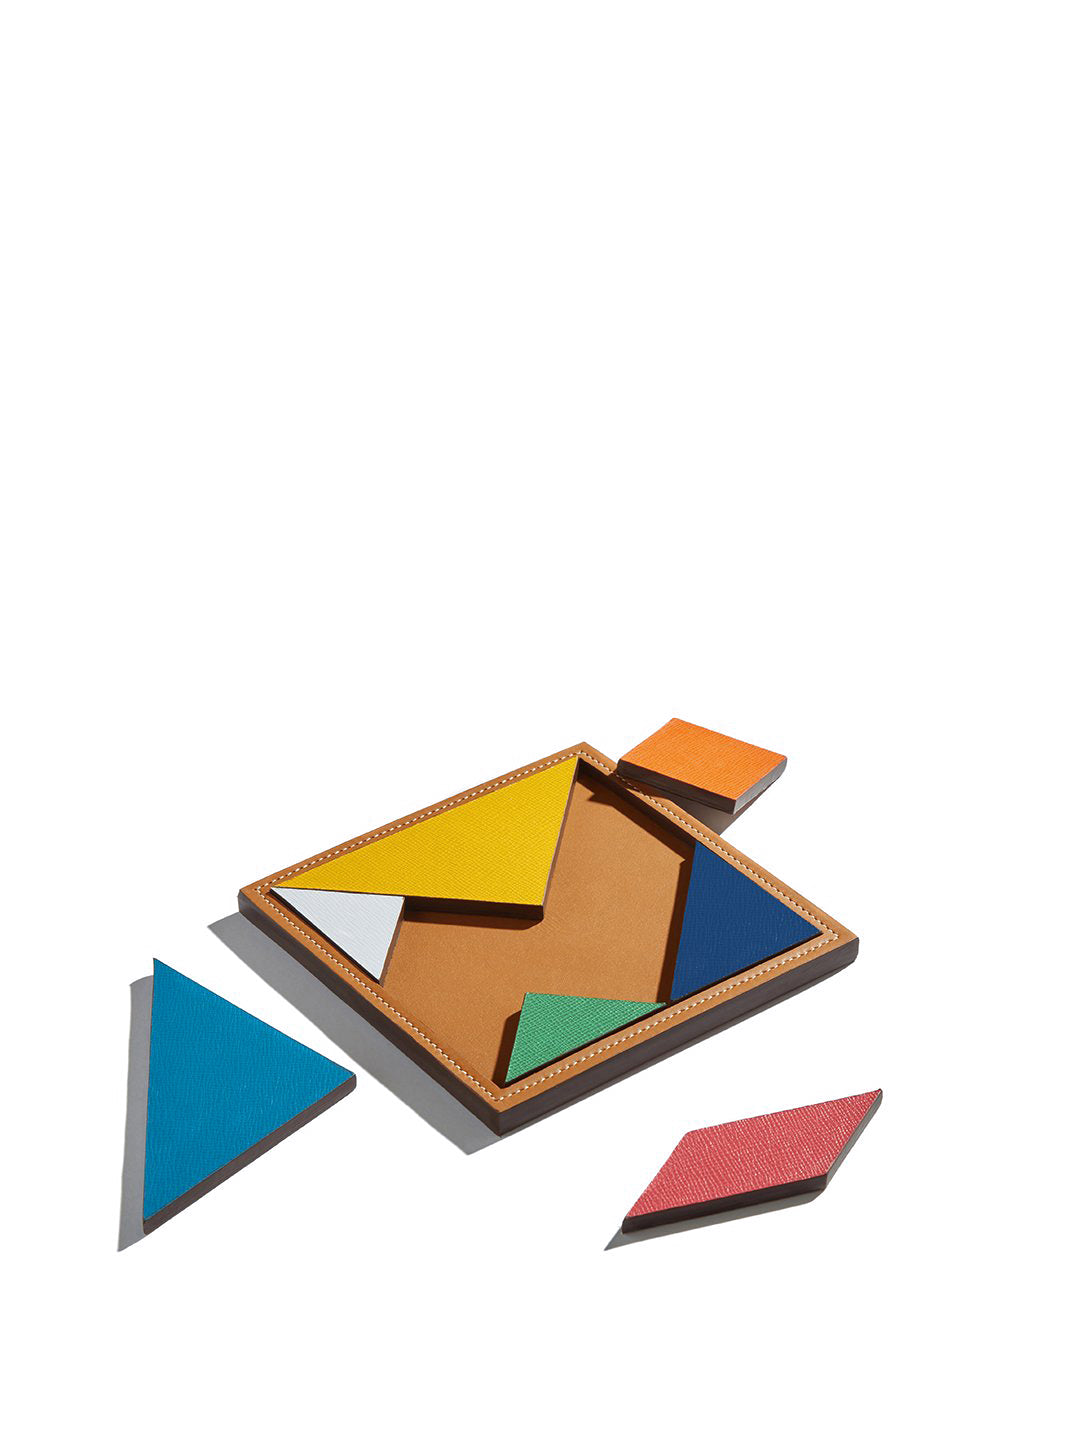 Leather Tangram Game